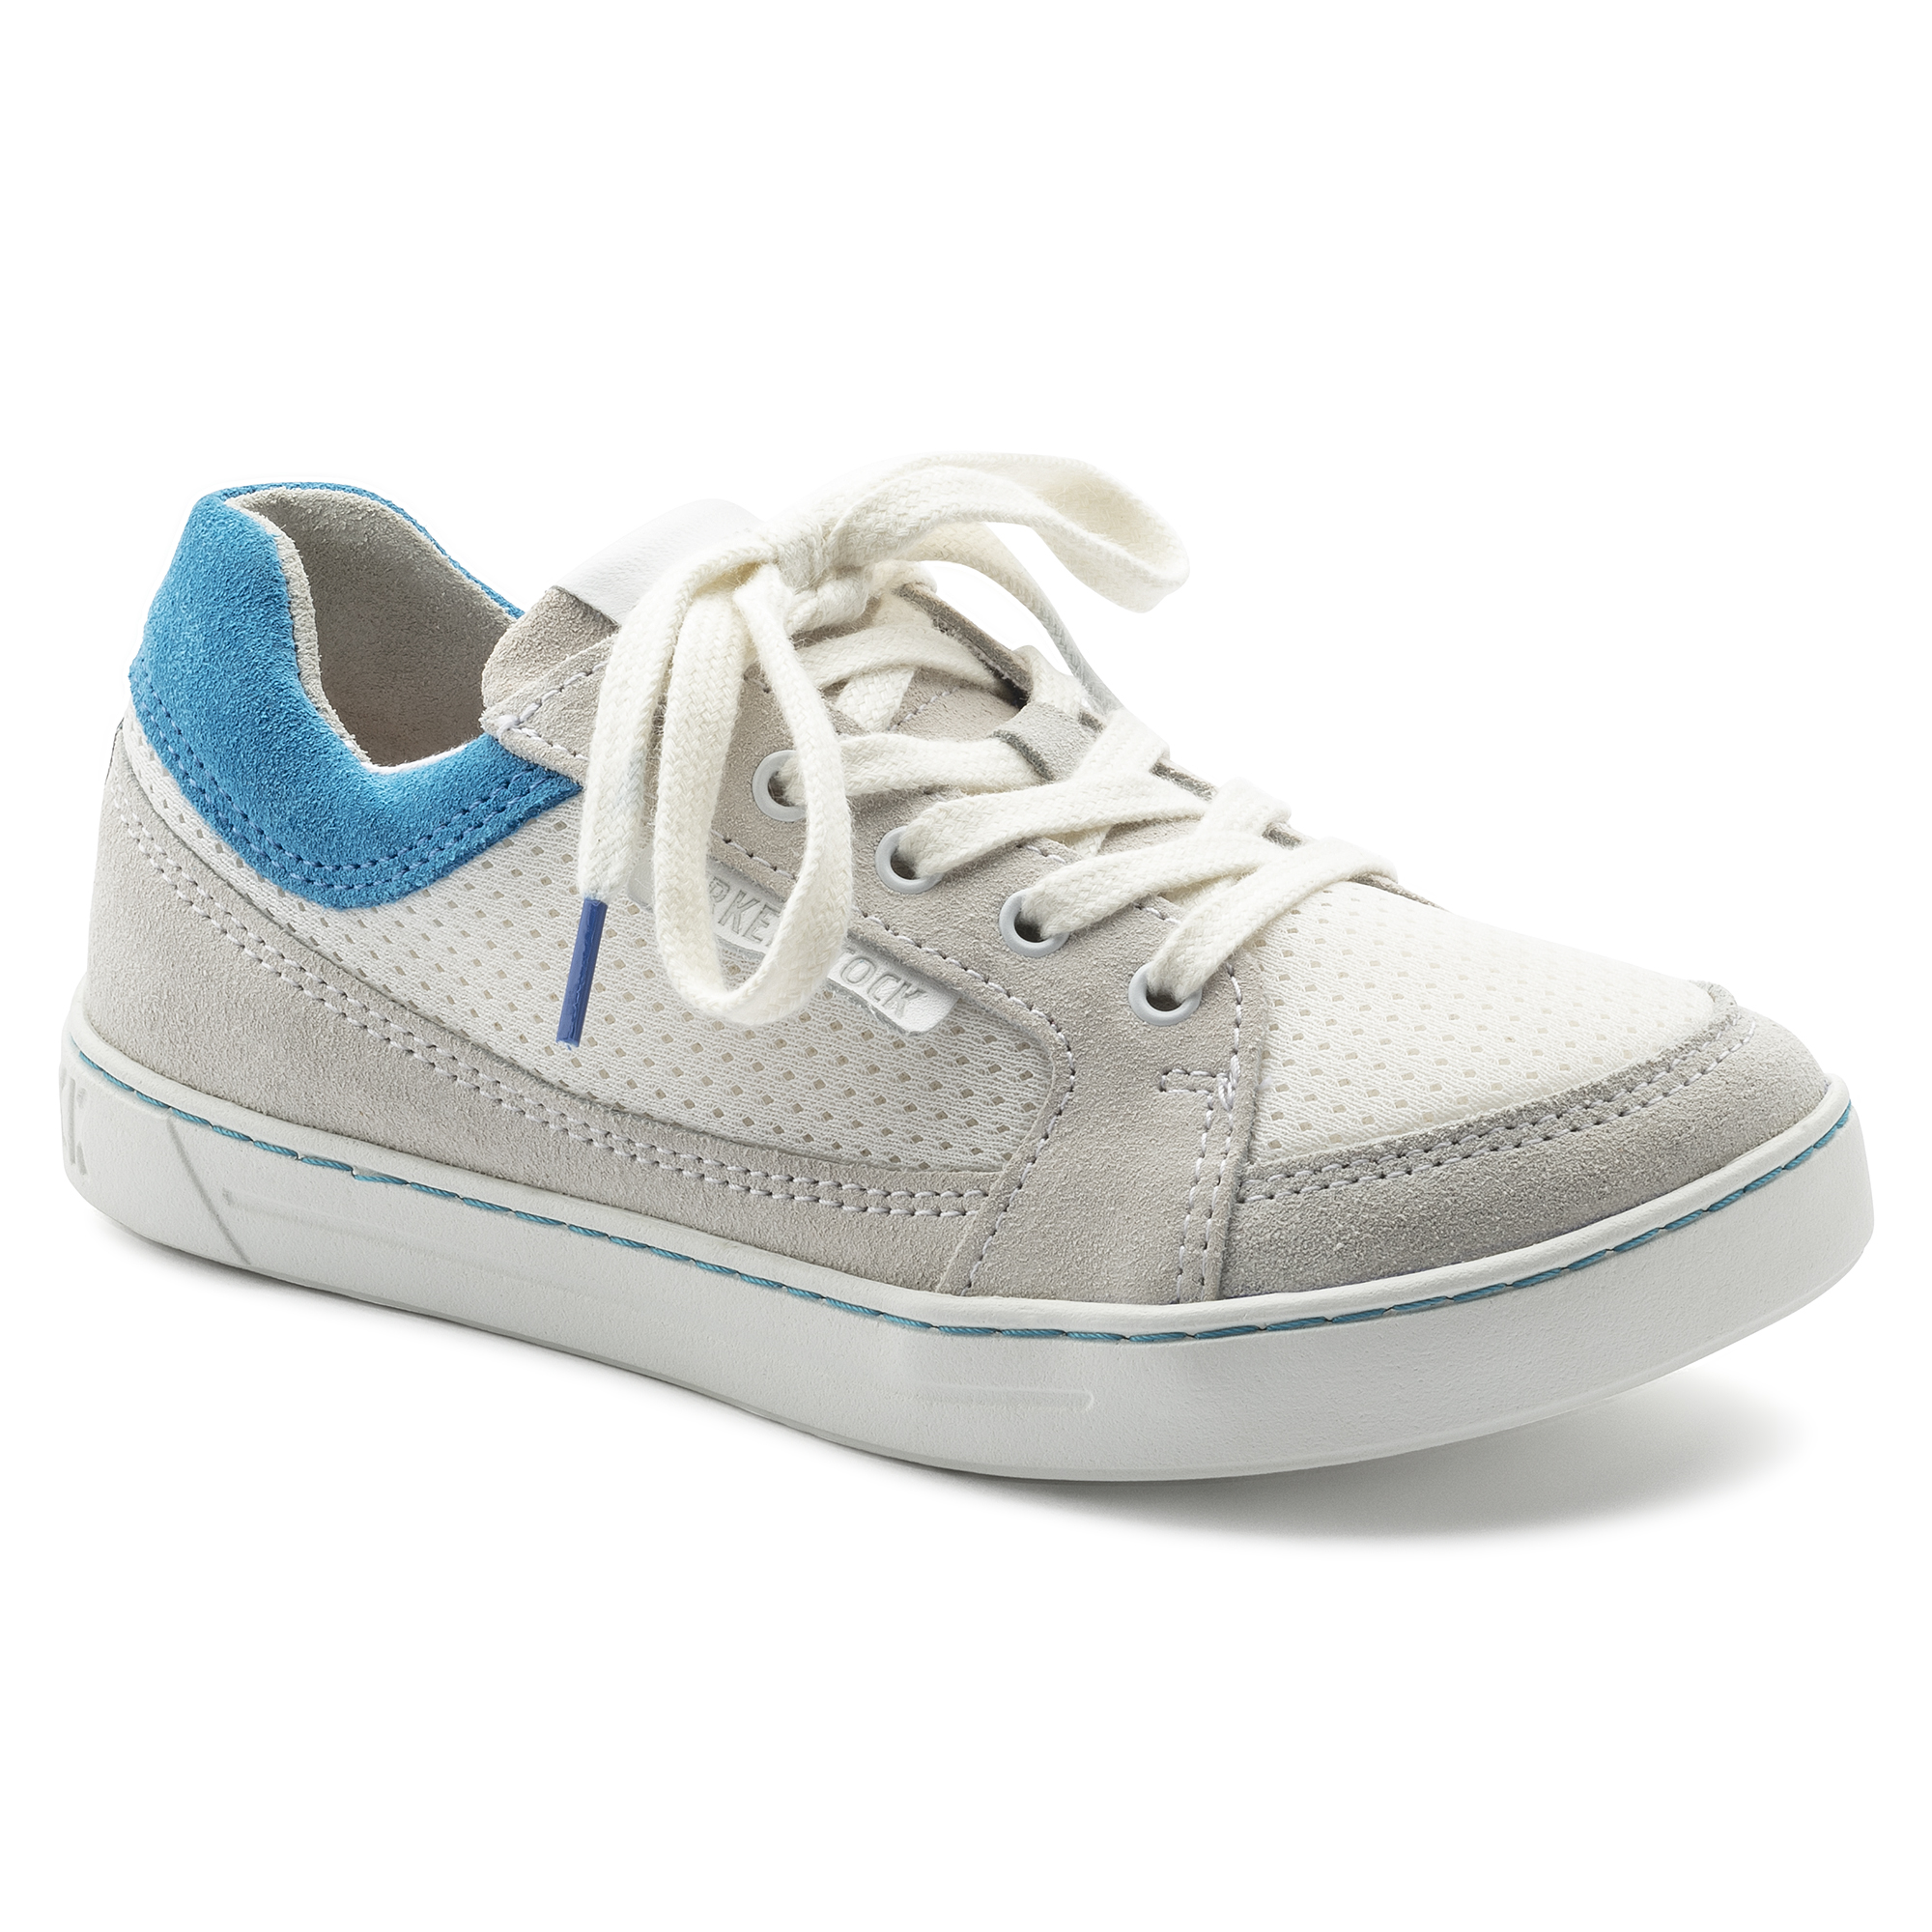 225d7a920cab8c Astee Suede Leather Textile Off White ...